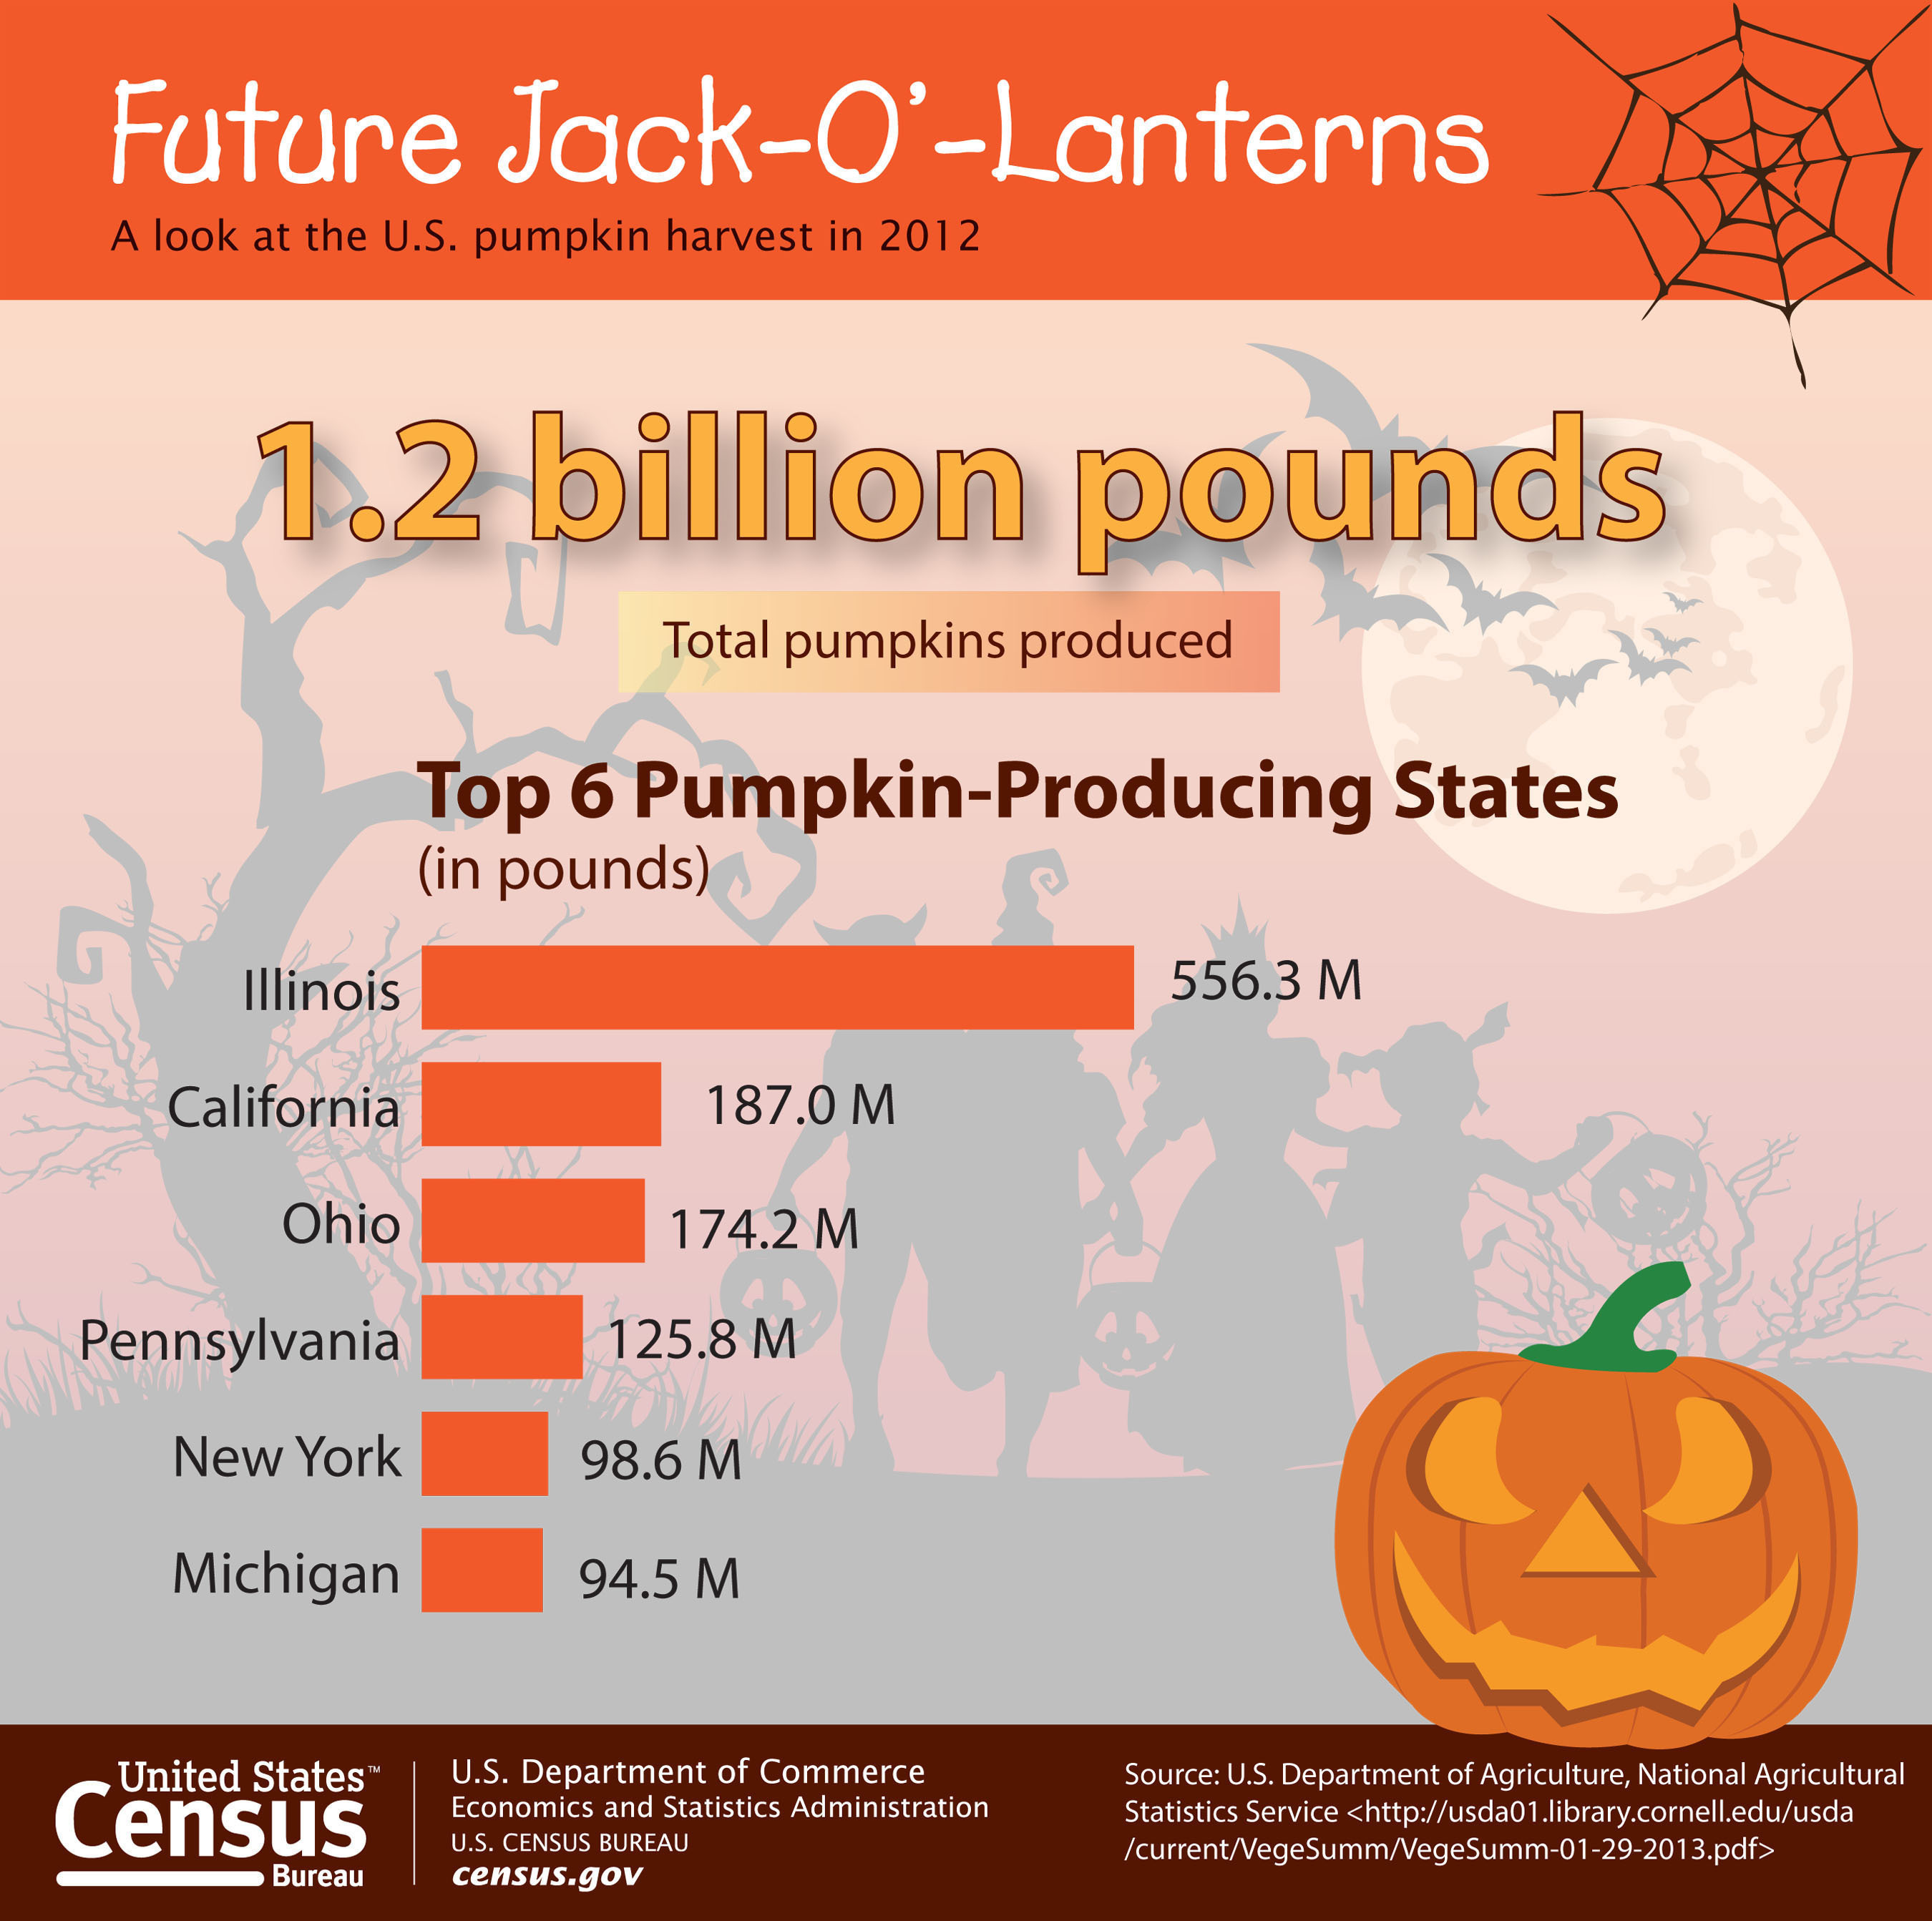 Of the top six pumpkin-producing states, Illinois led the country by producing an estimated 556.3 million pounds of this vined gourd, followed by California, Ohio, Pennsylvania, New York and Michigan. Source: Census Bureau Facts for Features Halloween 2013, http://www.census.gov/newsroom/releases/archives/facts_for_features_special_editions/cb13-ff23.html.  (PRNewsFoto/U.S. Census Bureau)